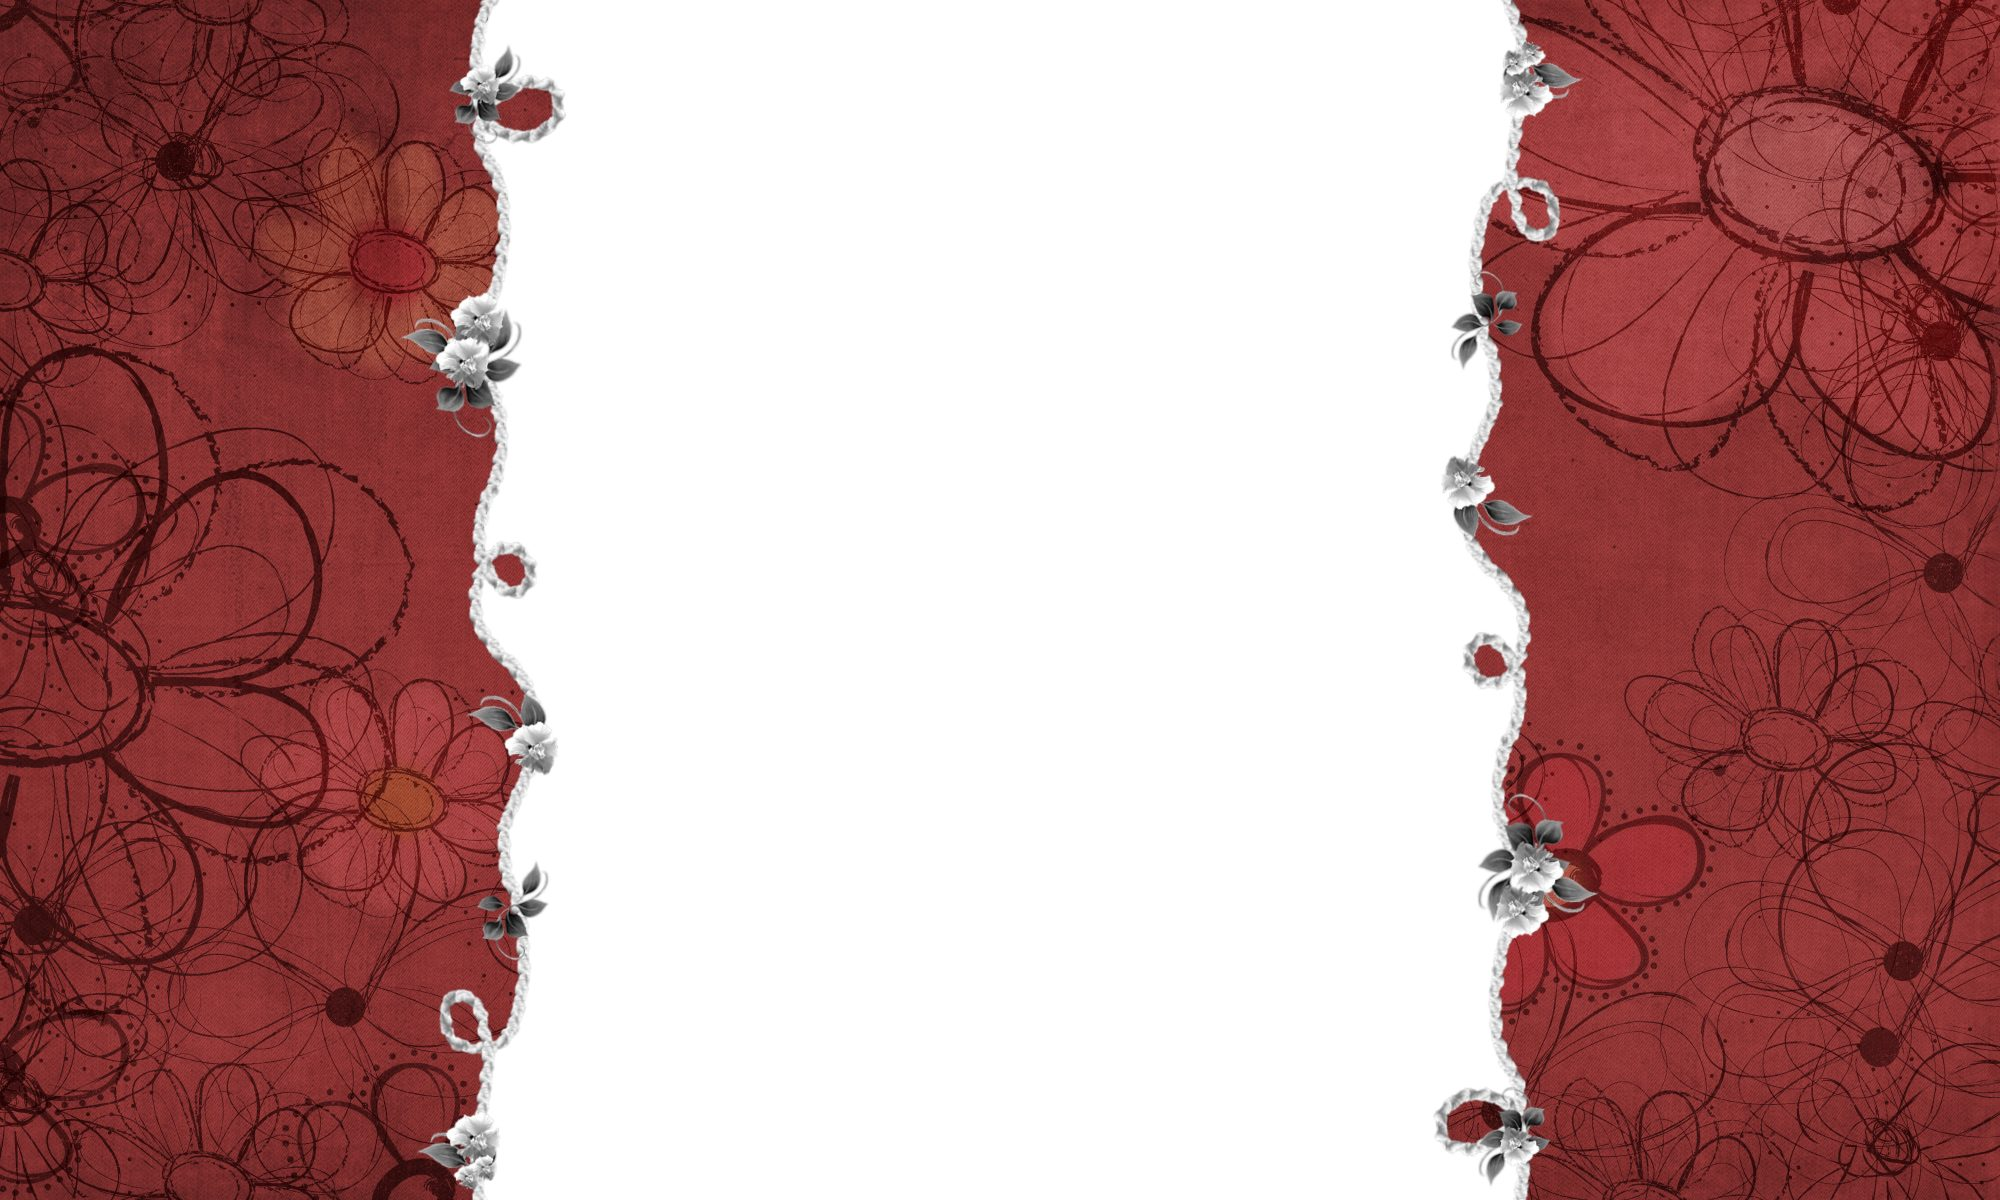 Burgundy Blooms Frame For Your Ppt Template Presentations  Burgundy